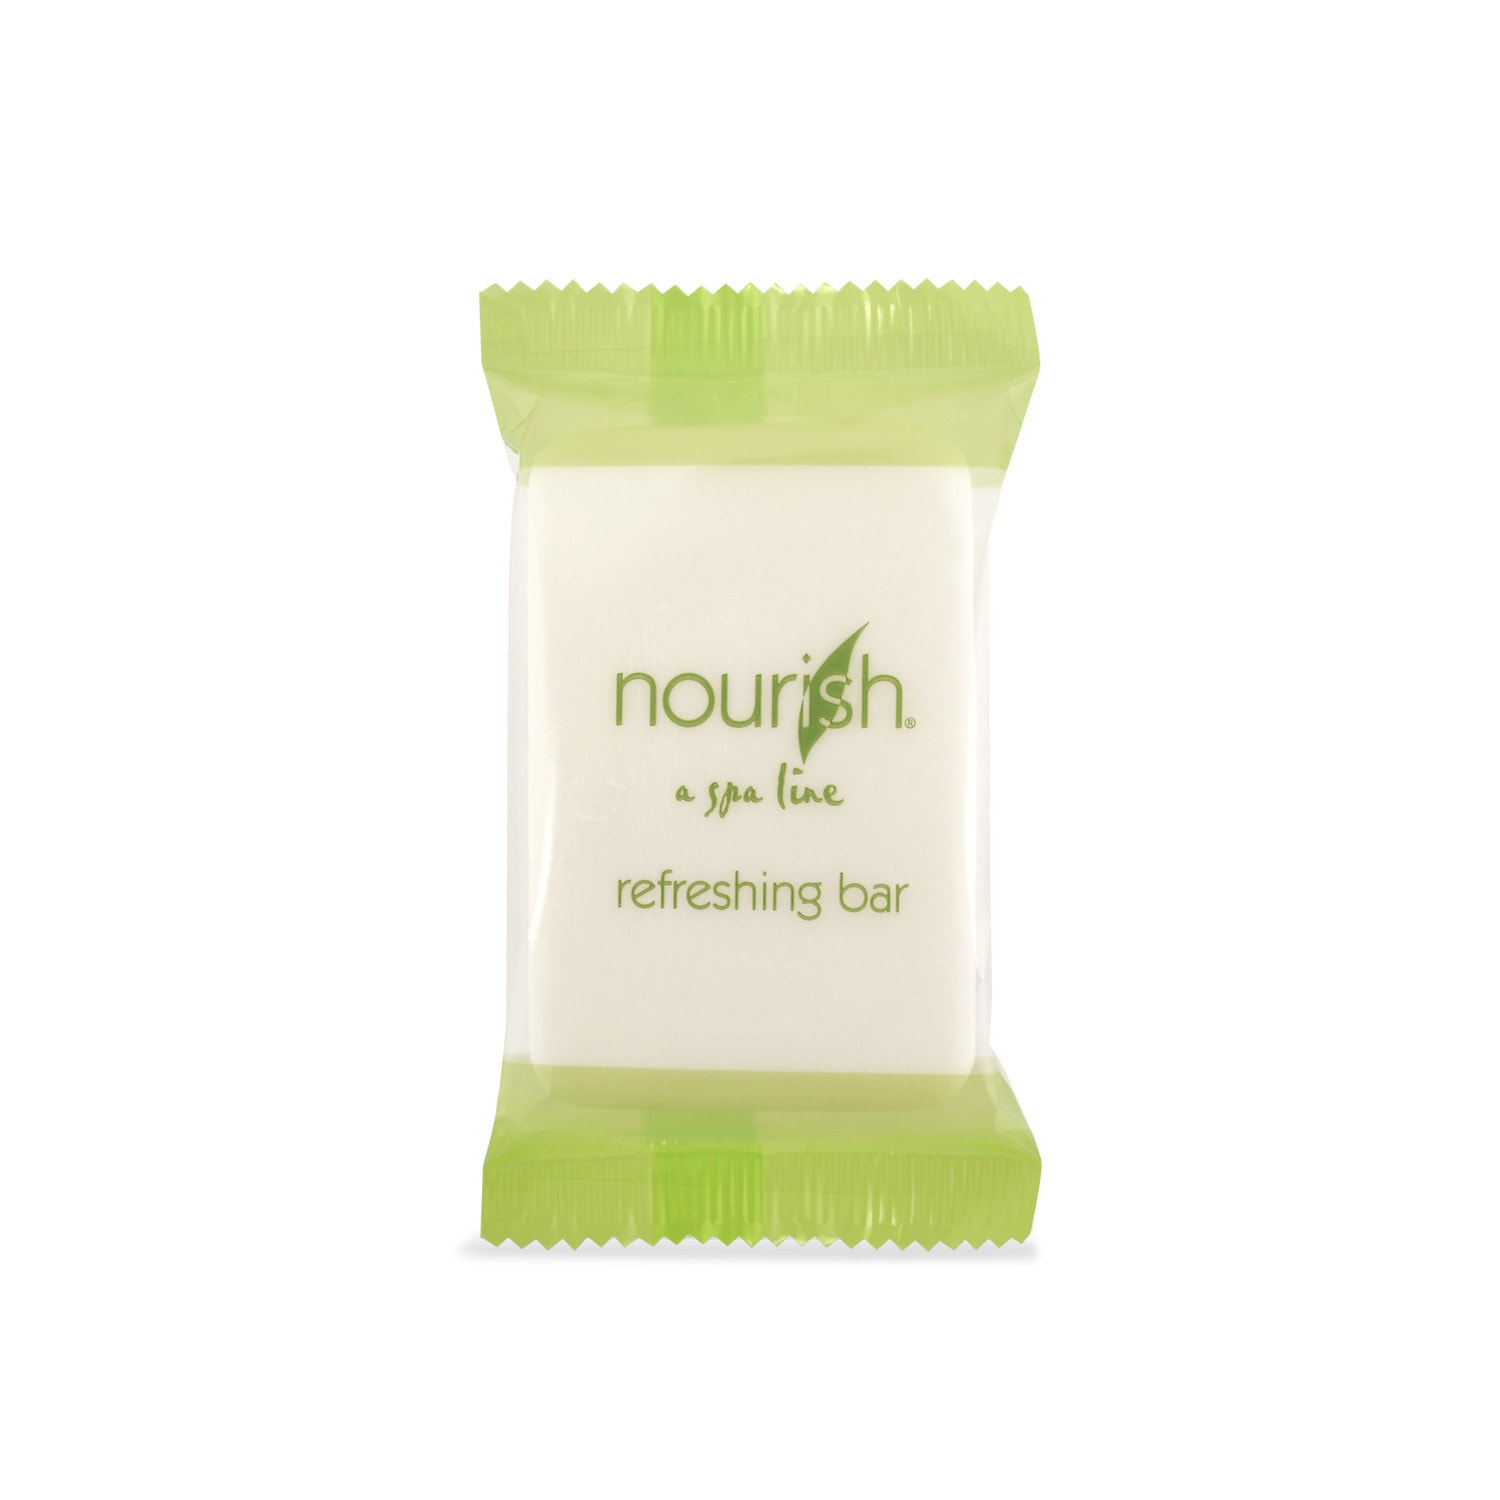 Nourish Amenities